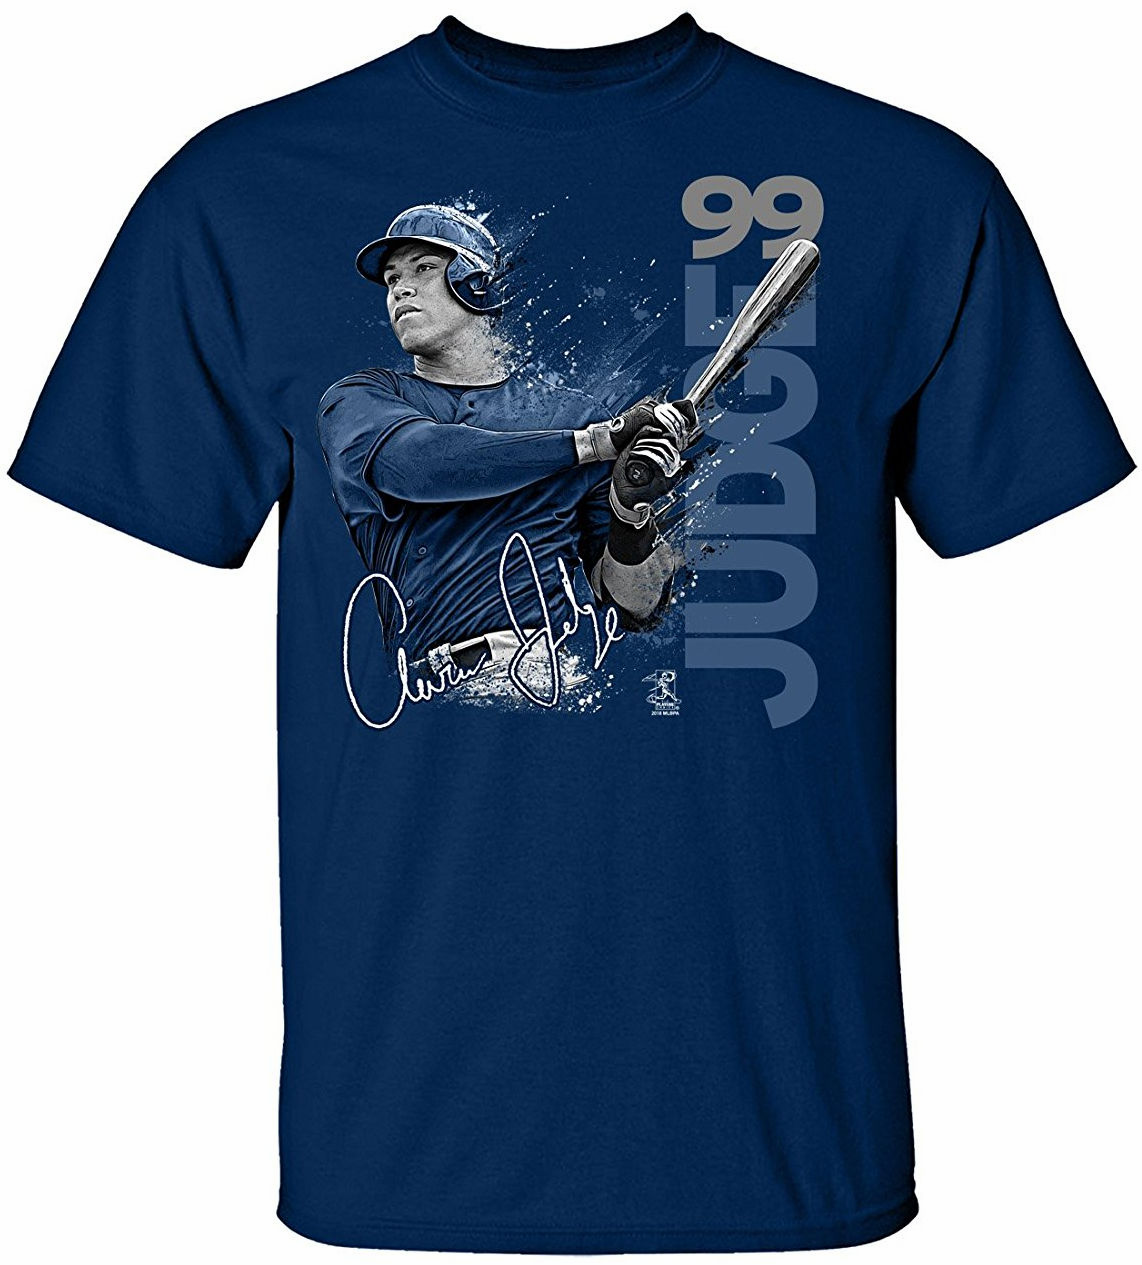 Aaron Judge New York Paint Splash T-Shirt<br>Short or Long Sleeve<br>Youth Med to Adult 4X